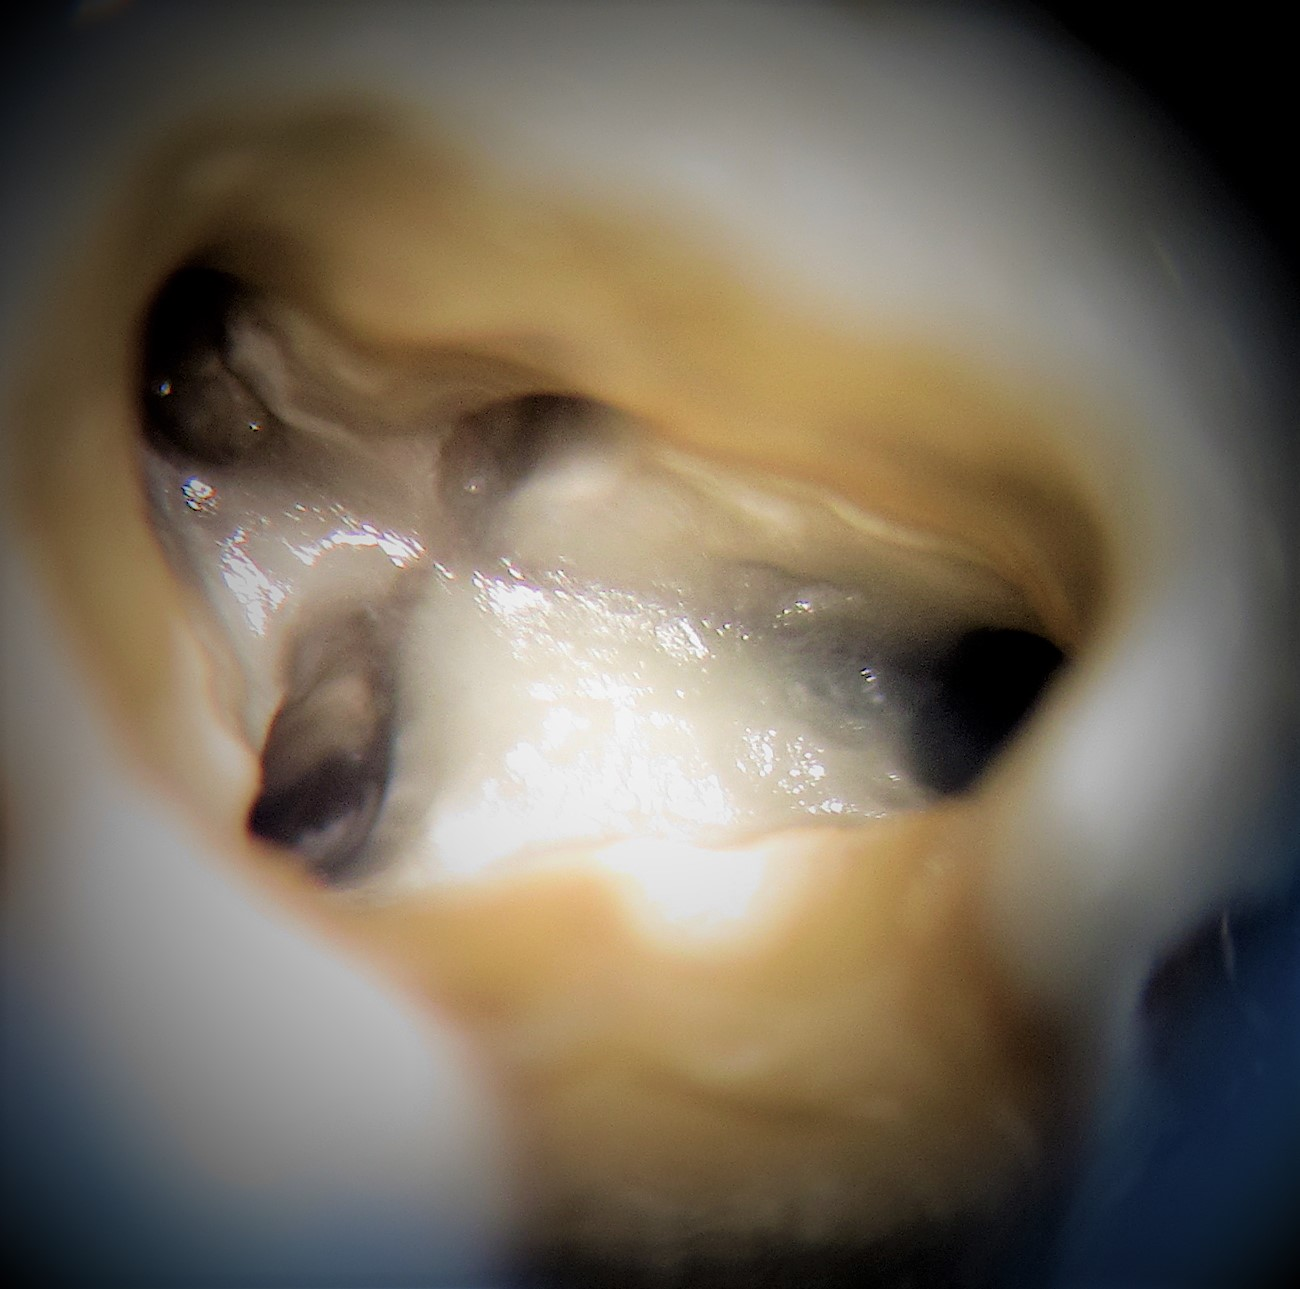 Examples of our work at Norfolk Endodontics